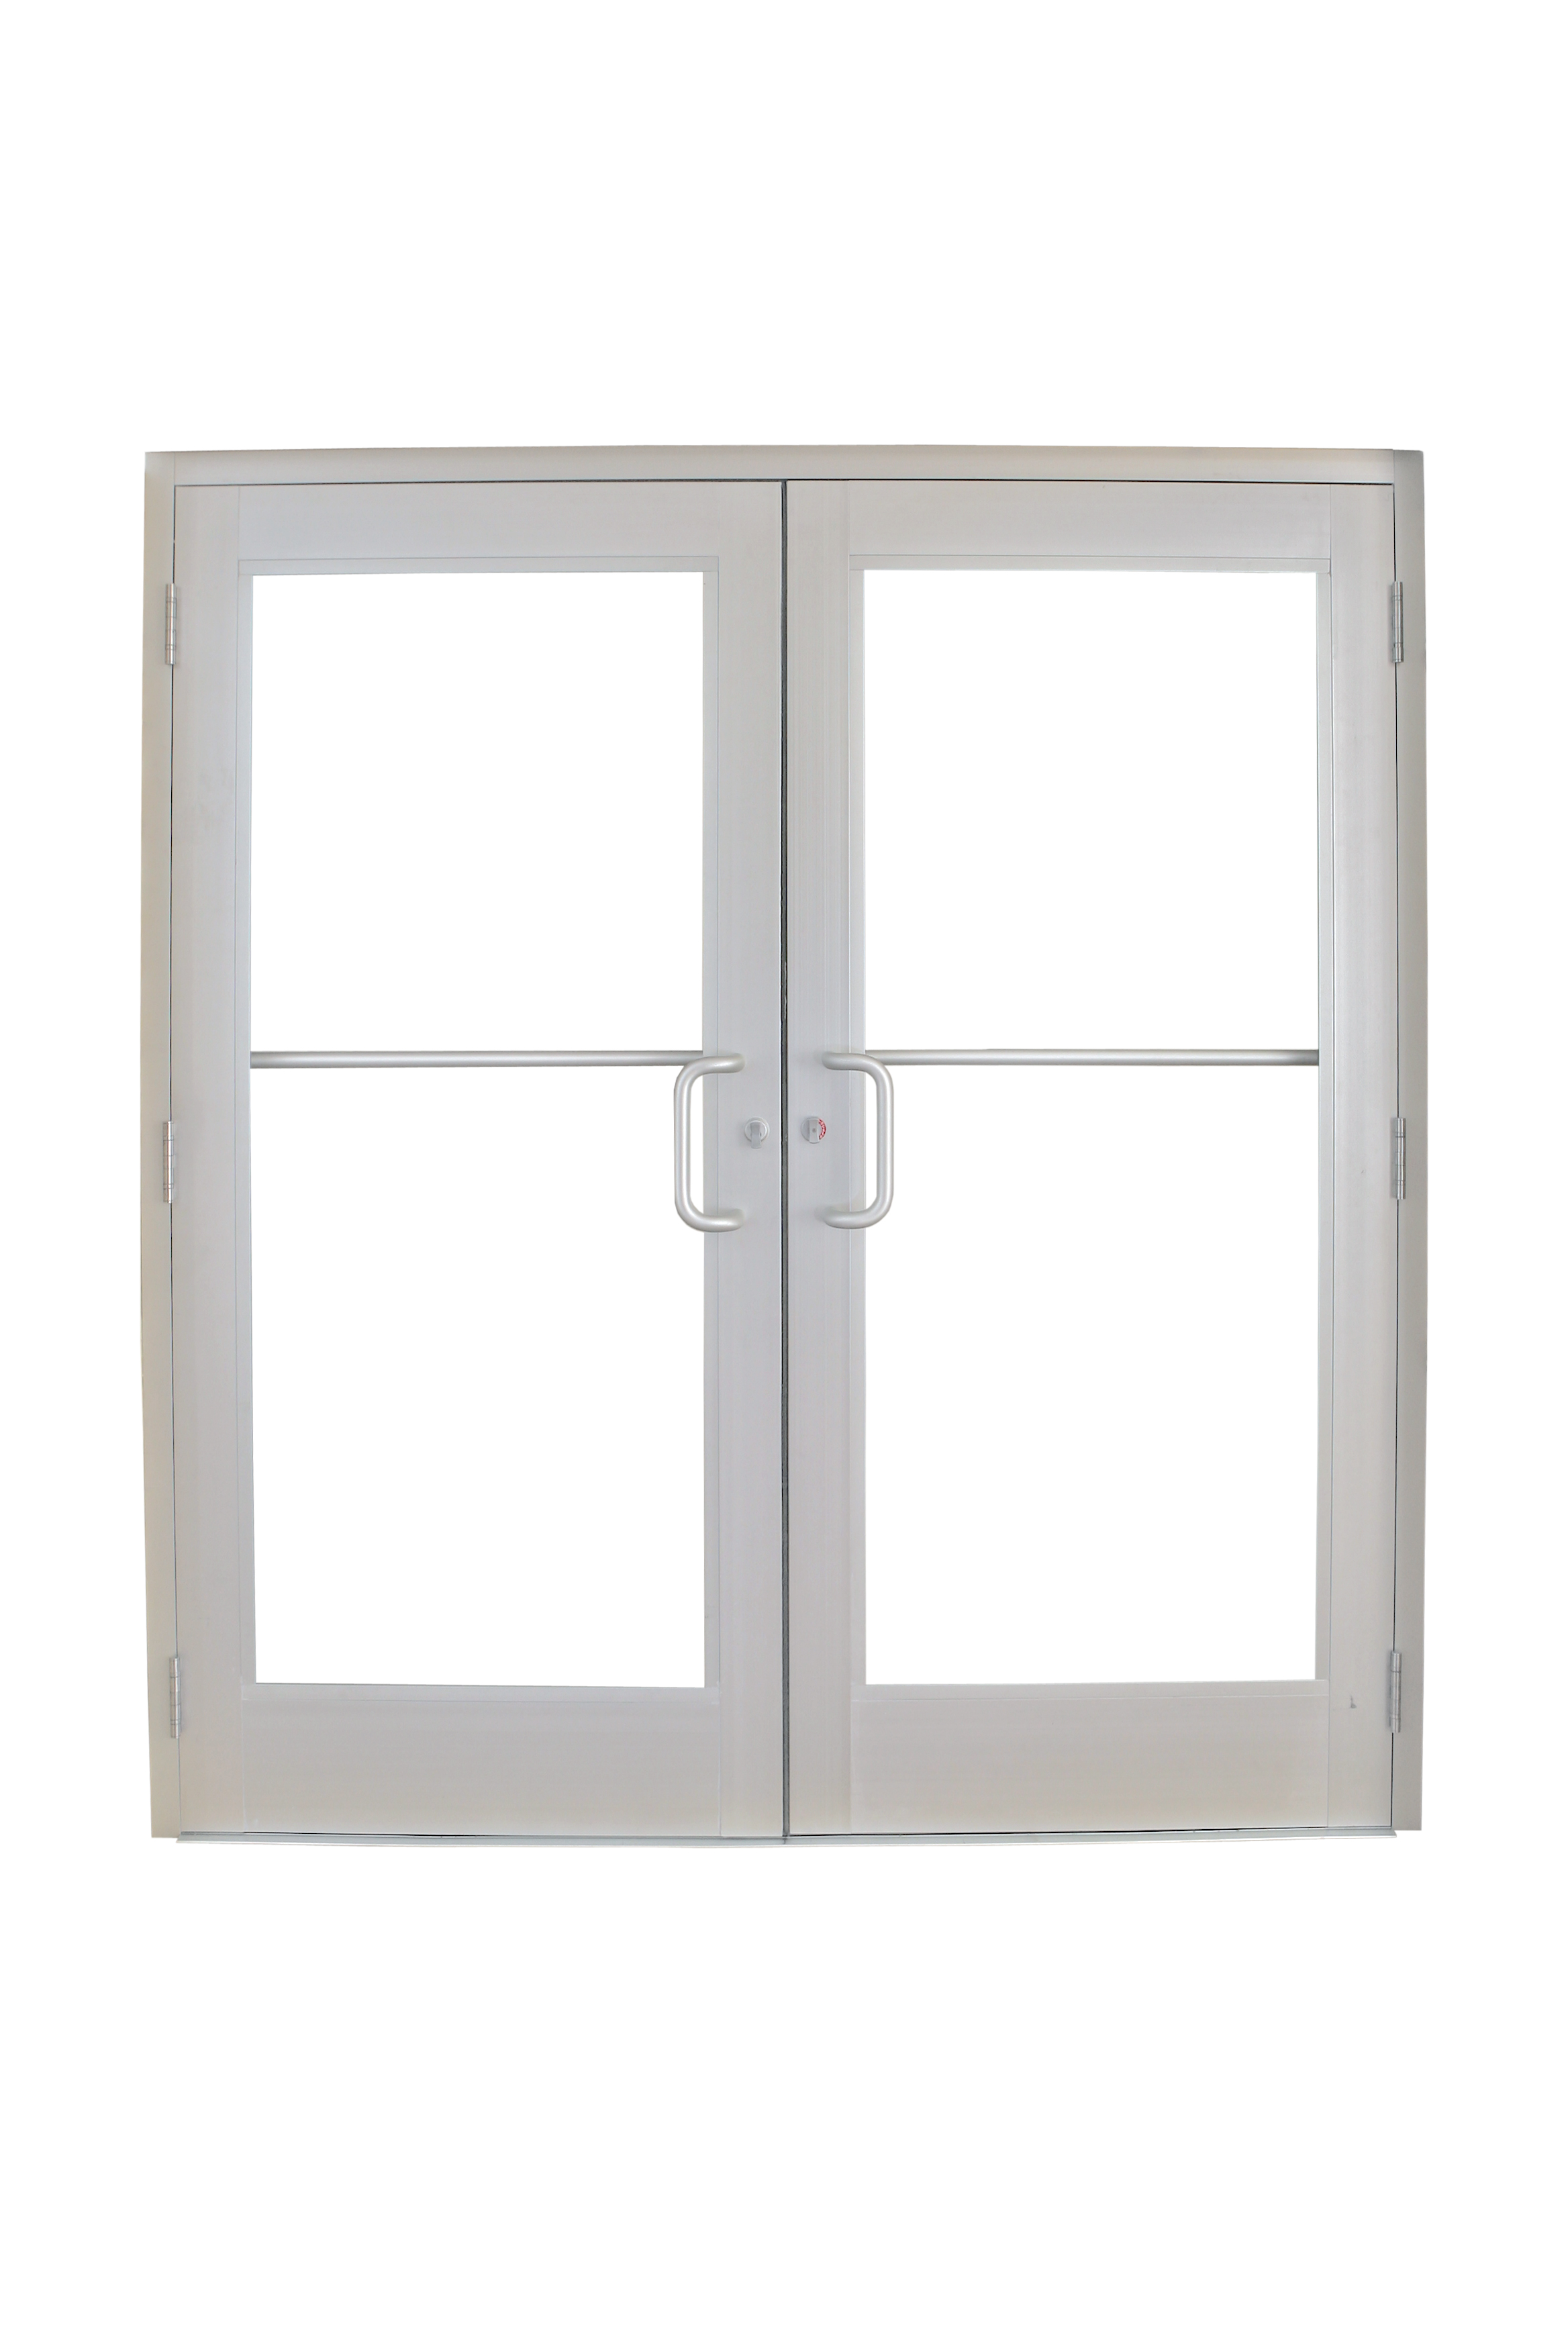 Entry Door Se3550 Storefront French Door Impact Resistant Doors Pgt Industries Custom